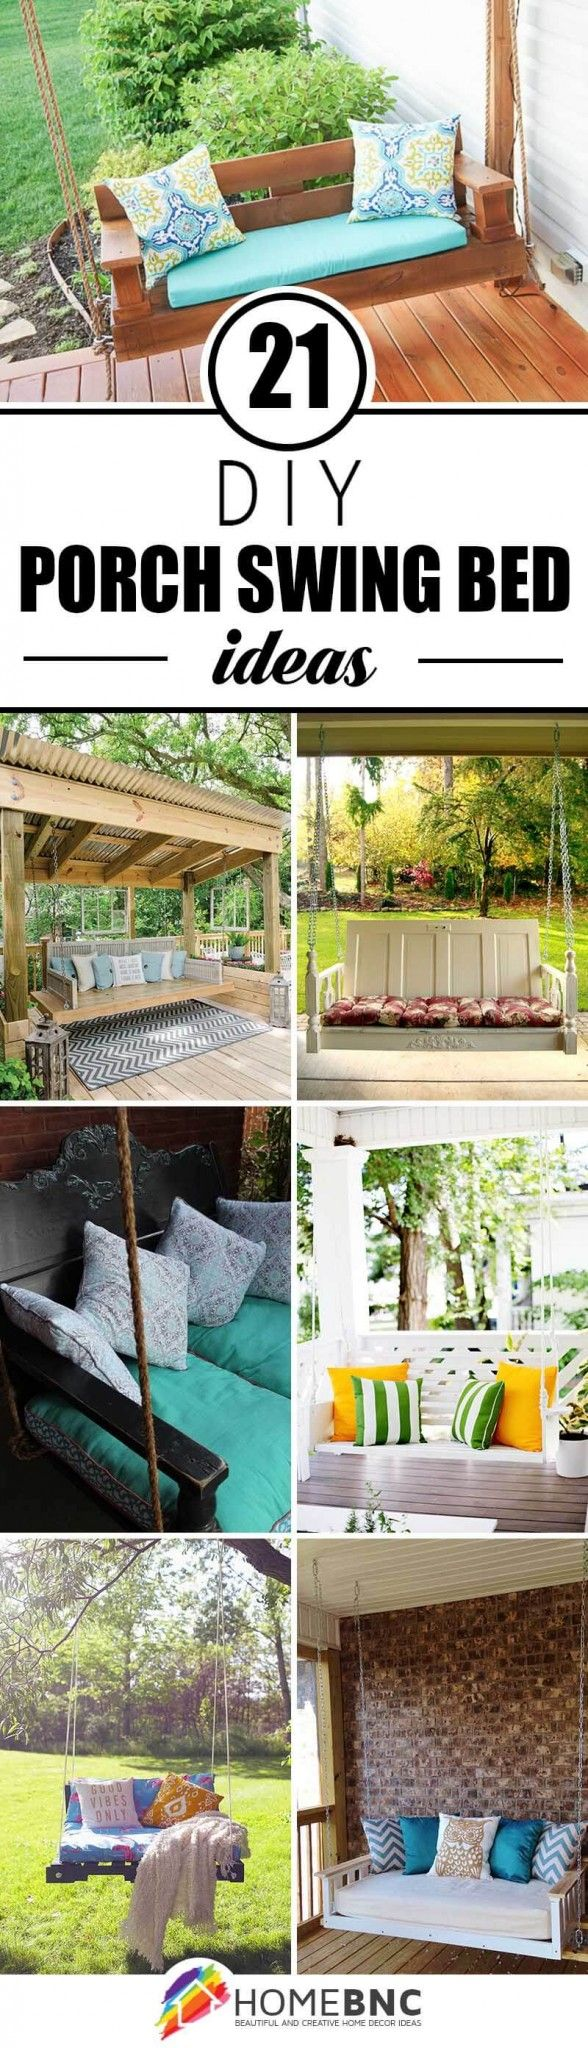 best 25 porch swing beds ideas on pinterest porch bed hanging porch bed and swing beds